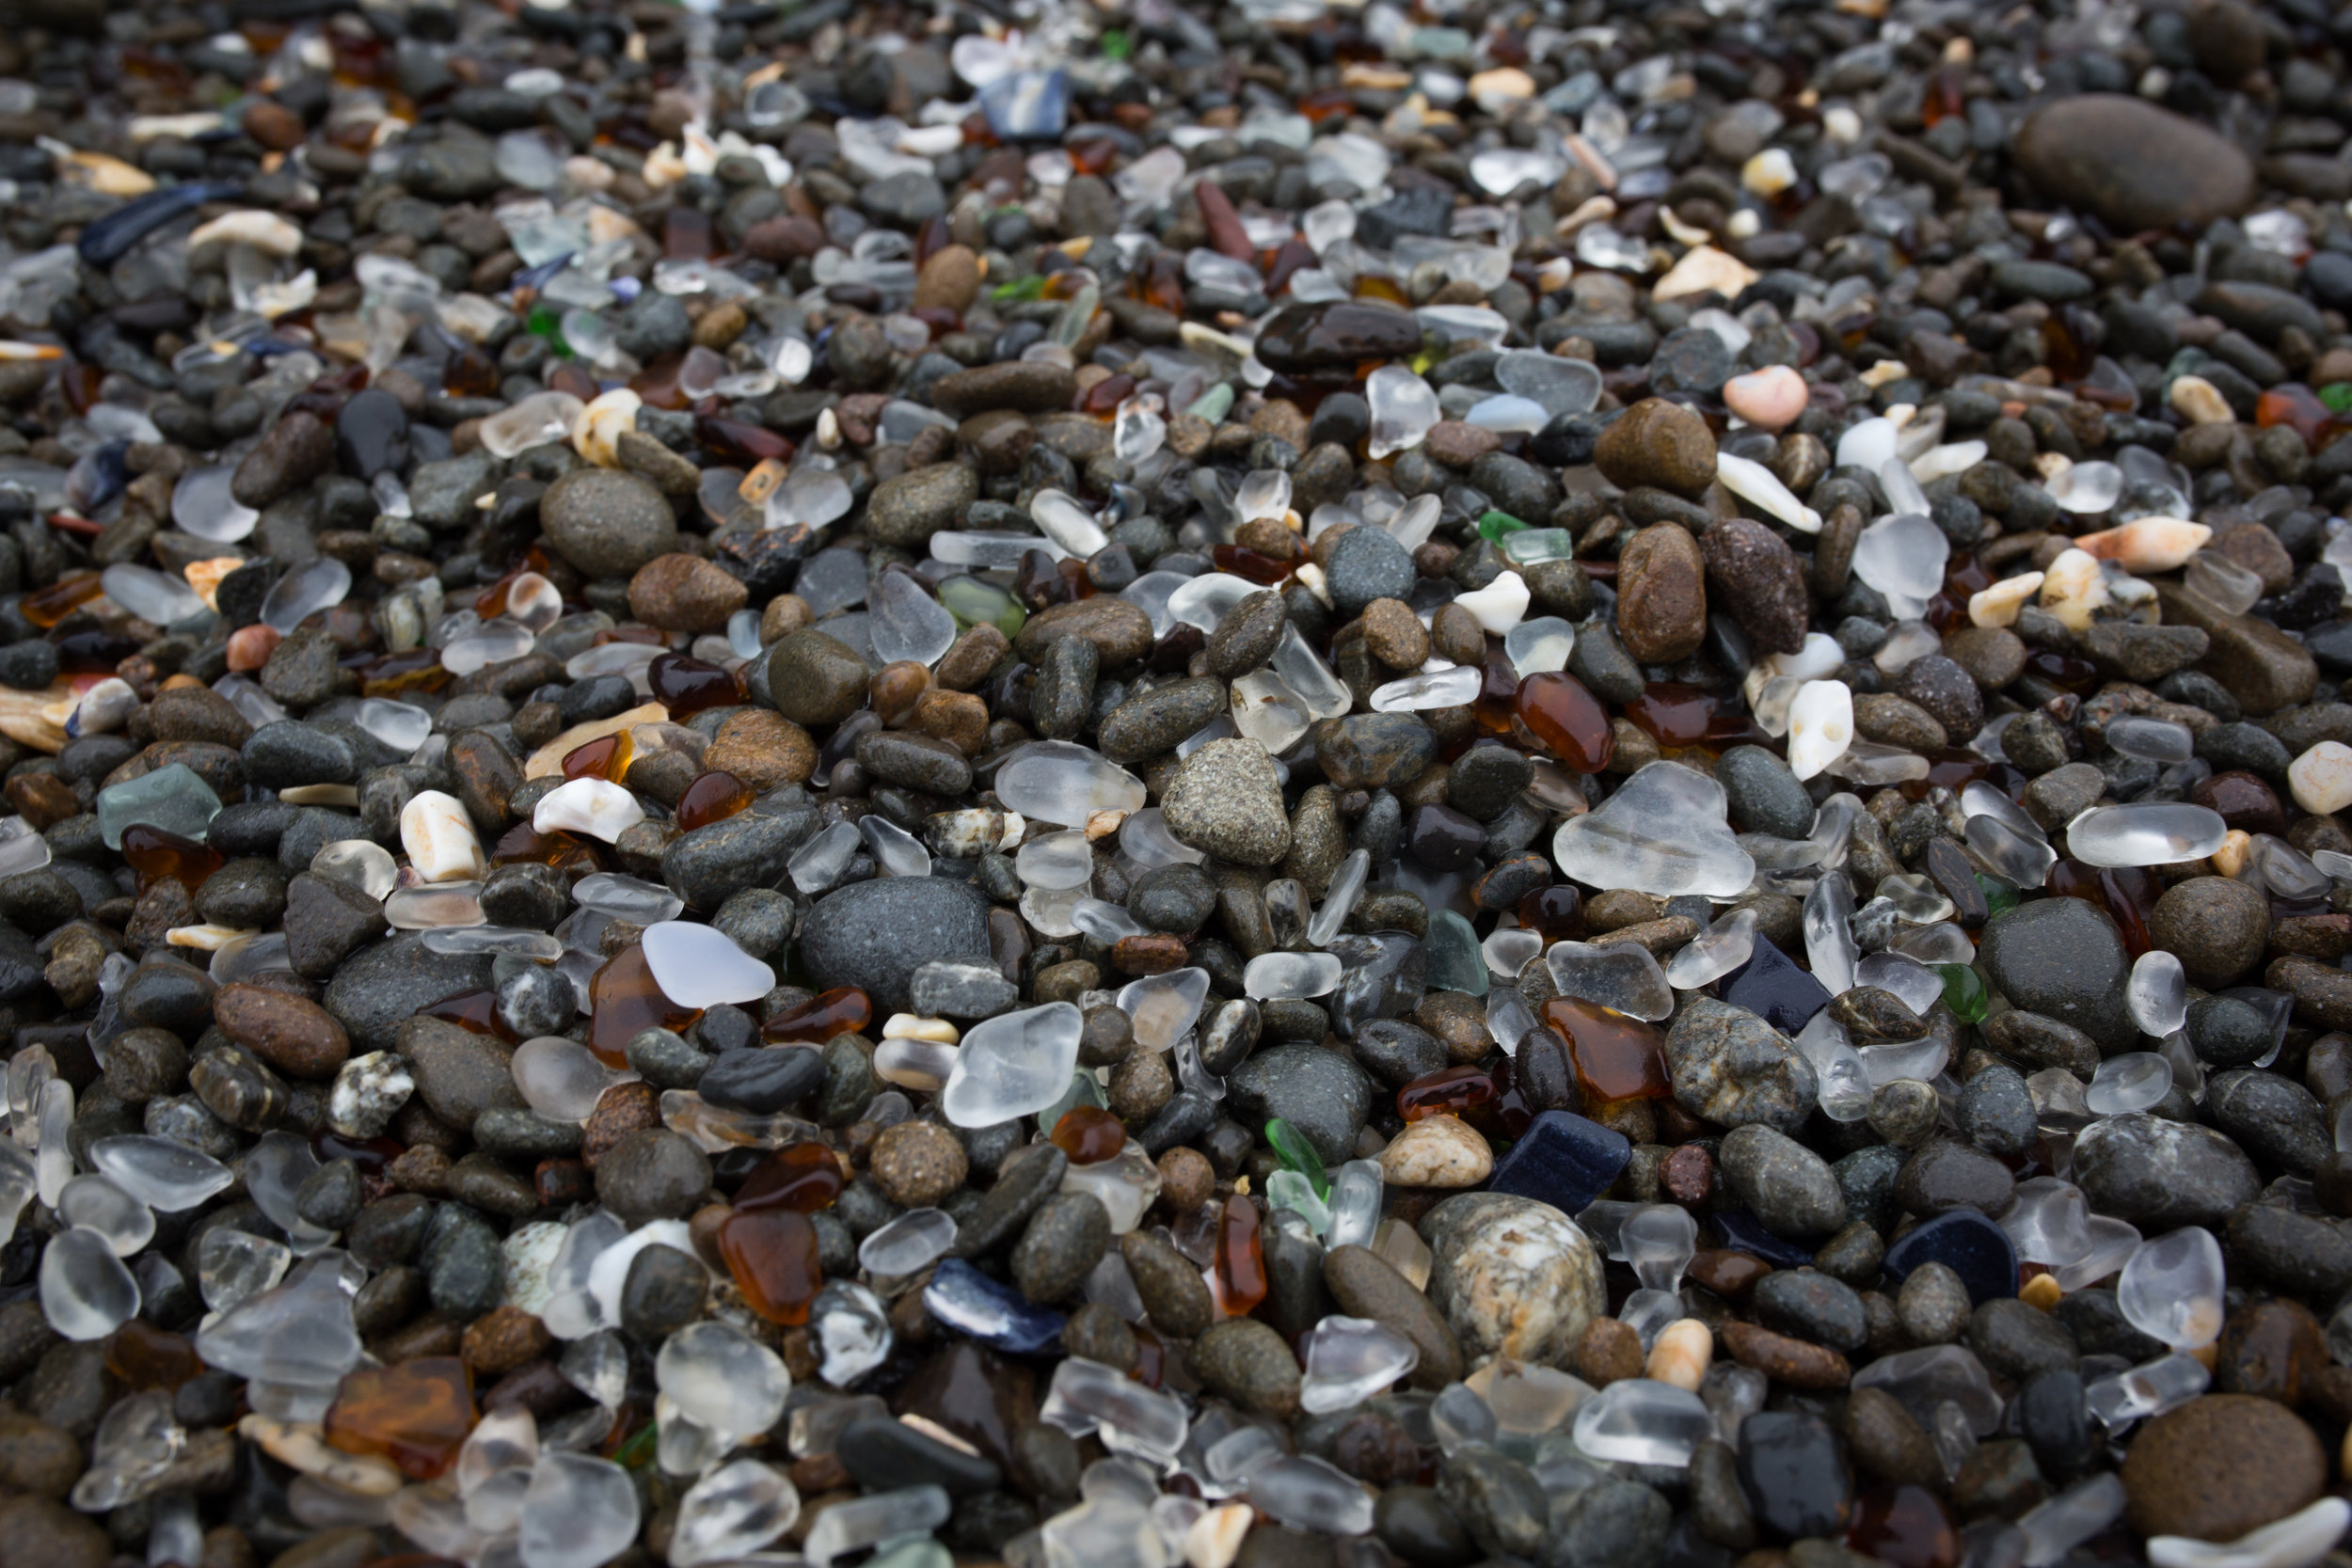 Glass Beach is made up mainly of seaglass pebbles